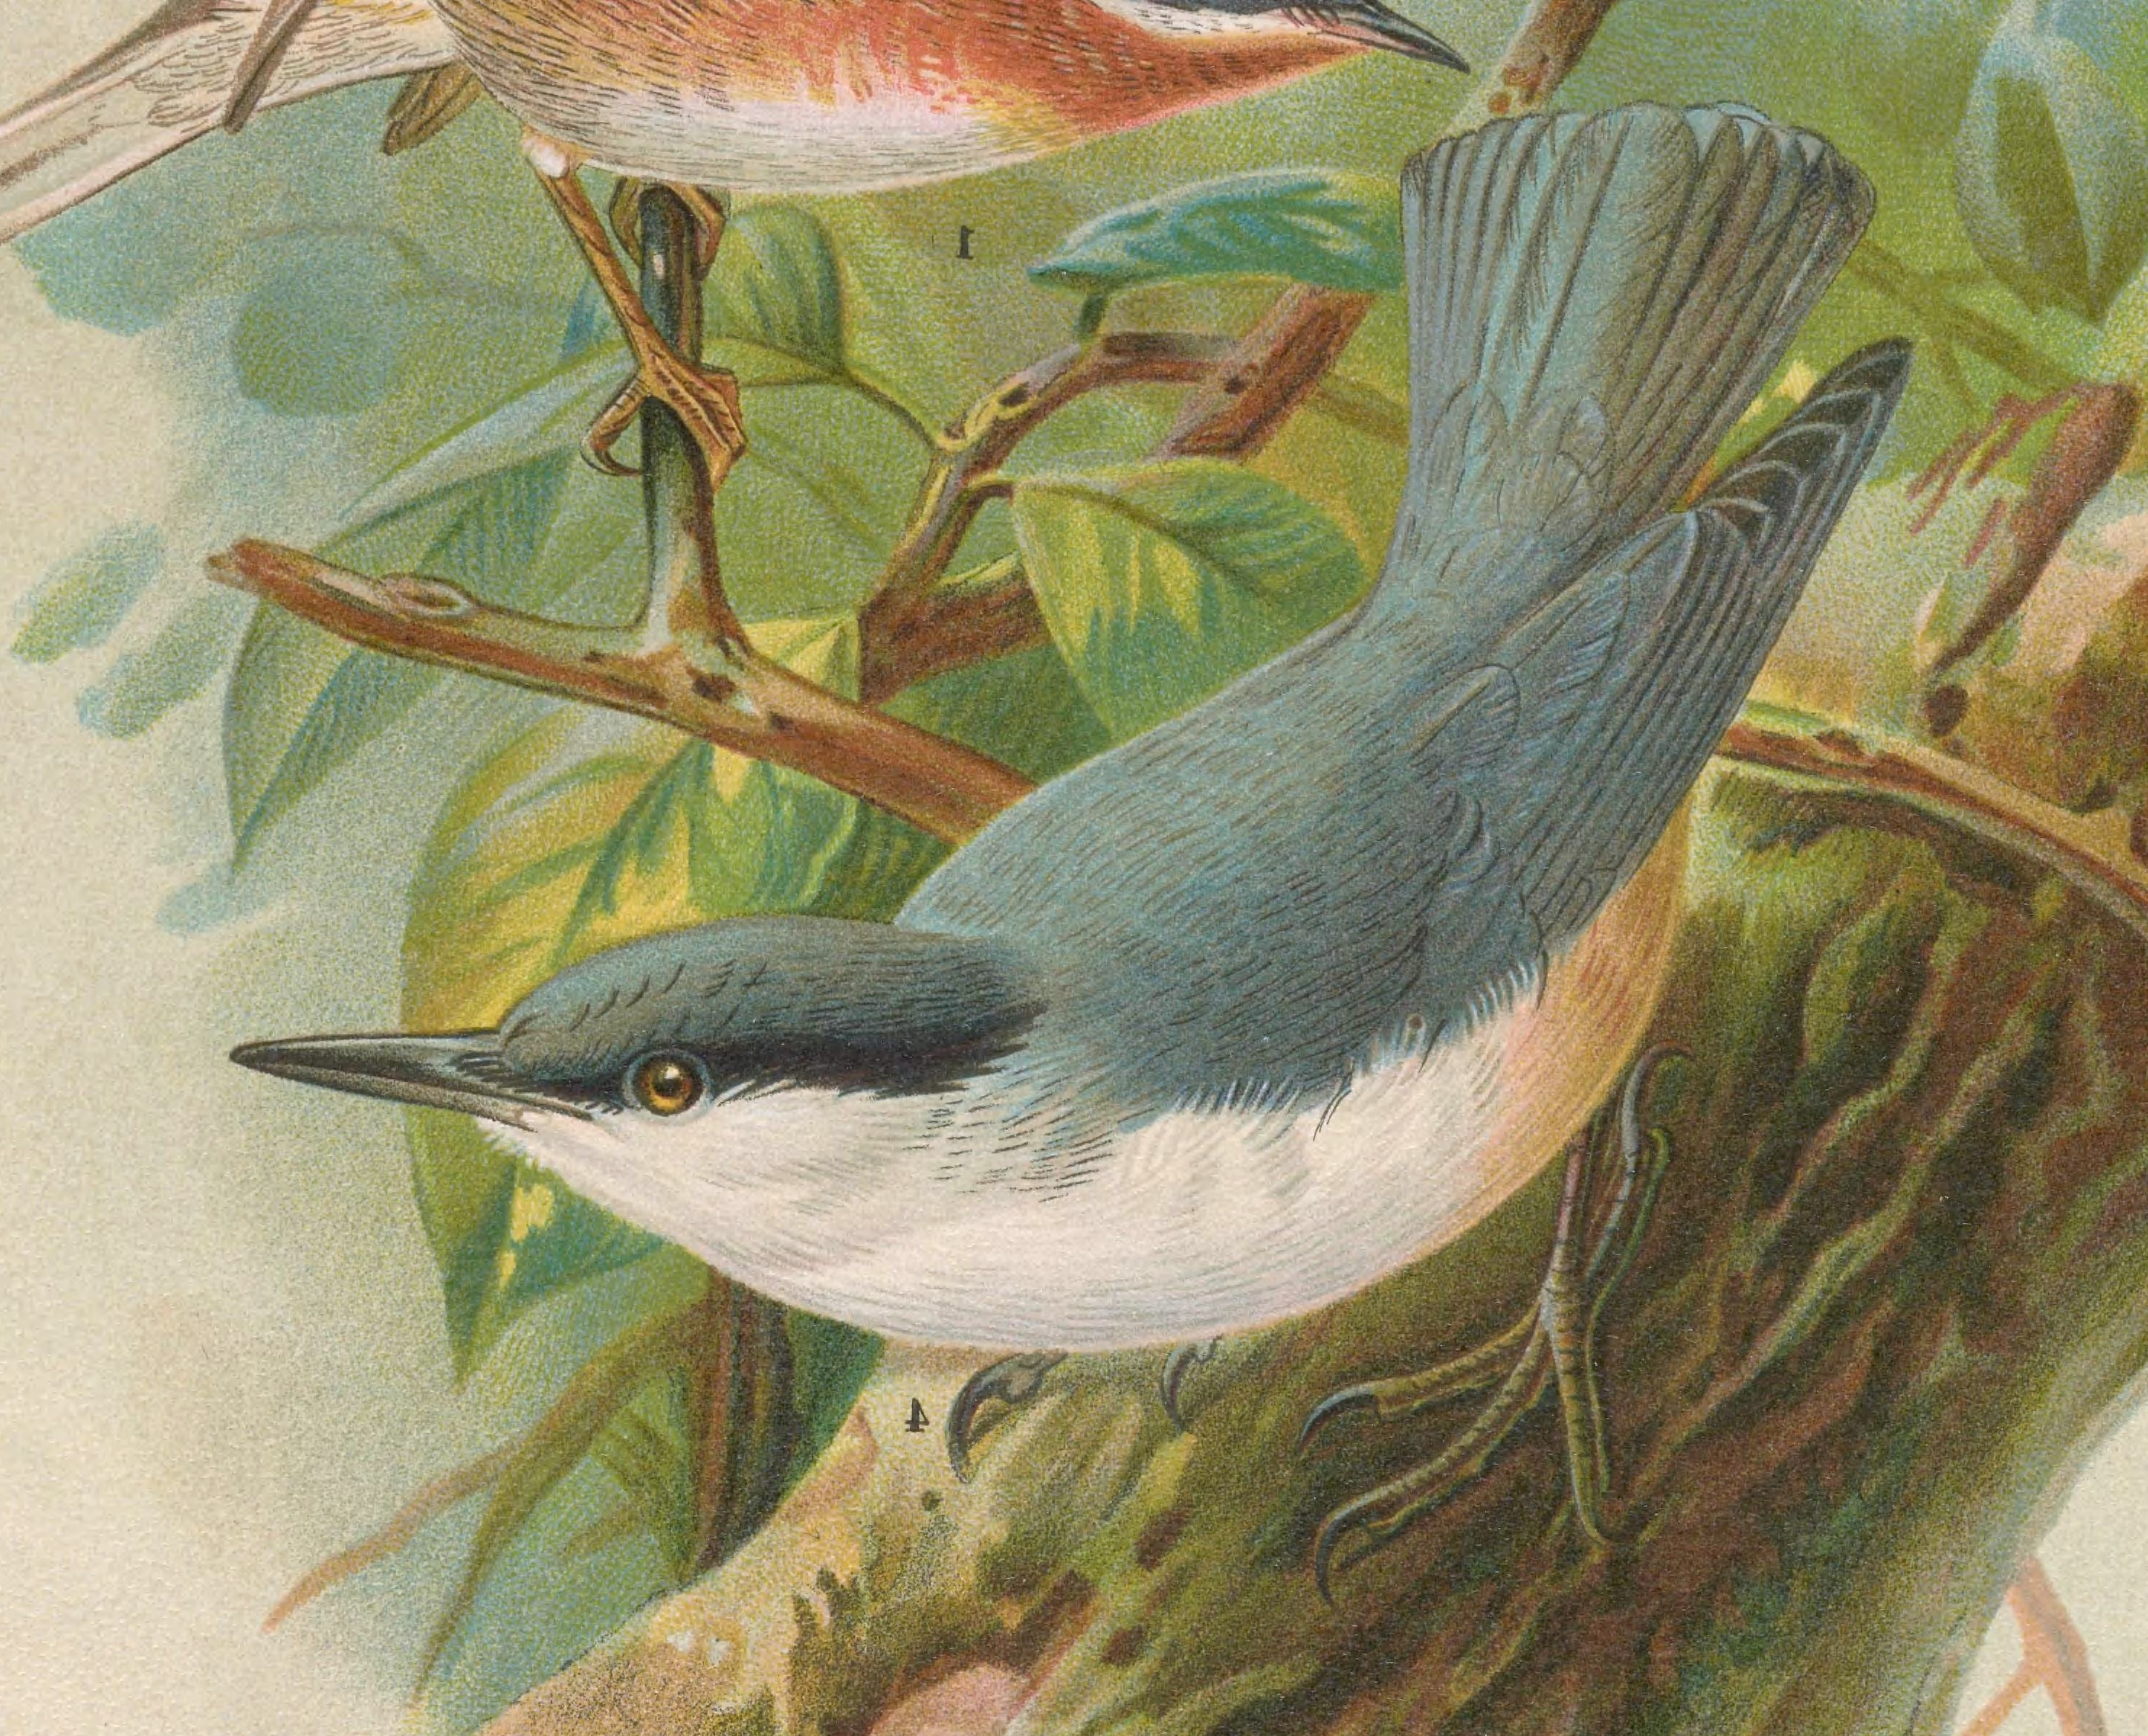 English: Illustration of a Rock Nuthatch